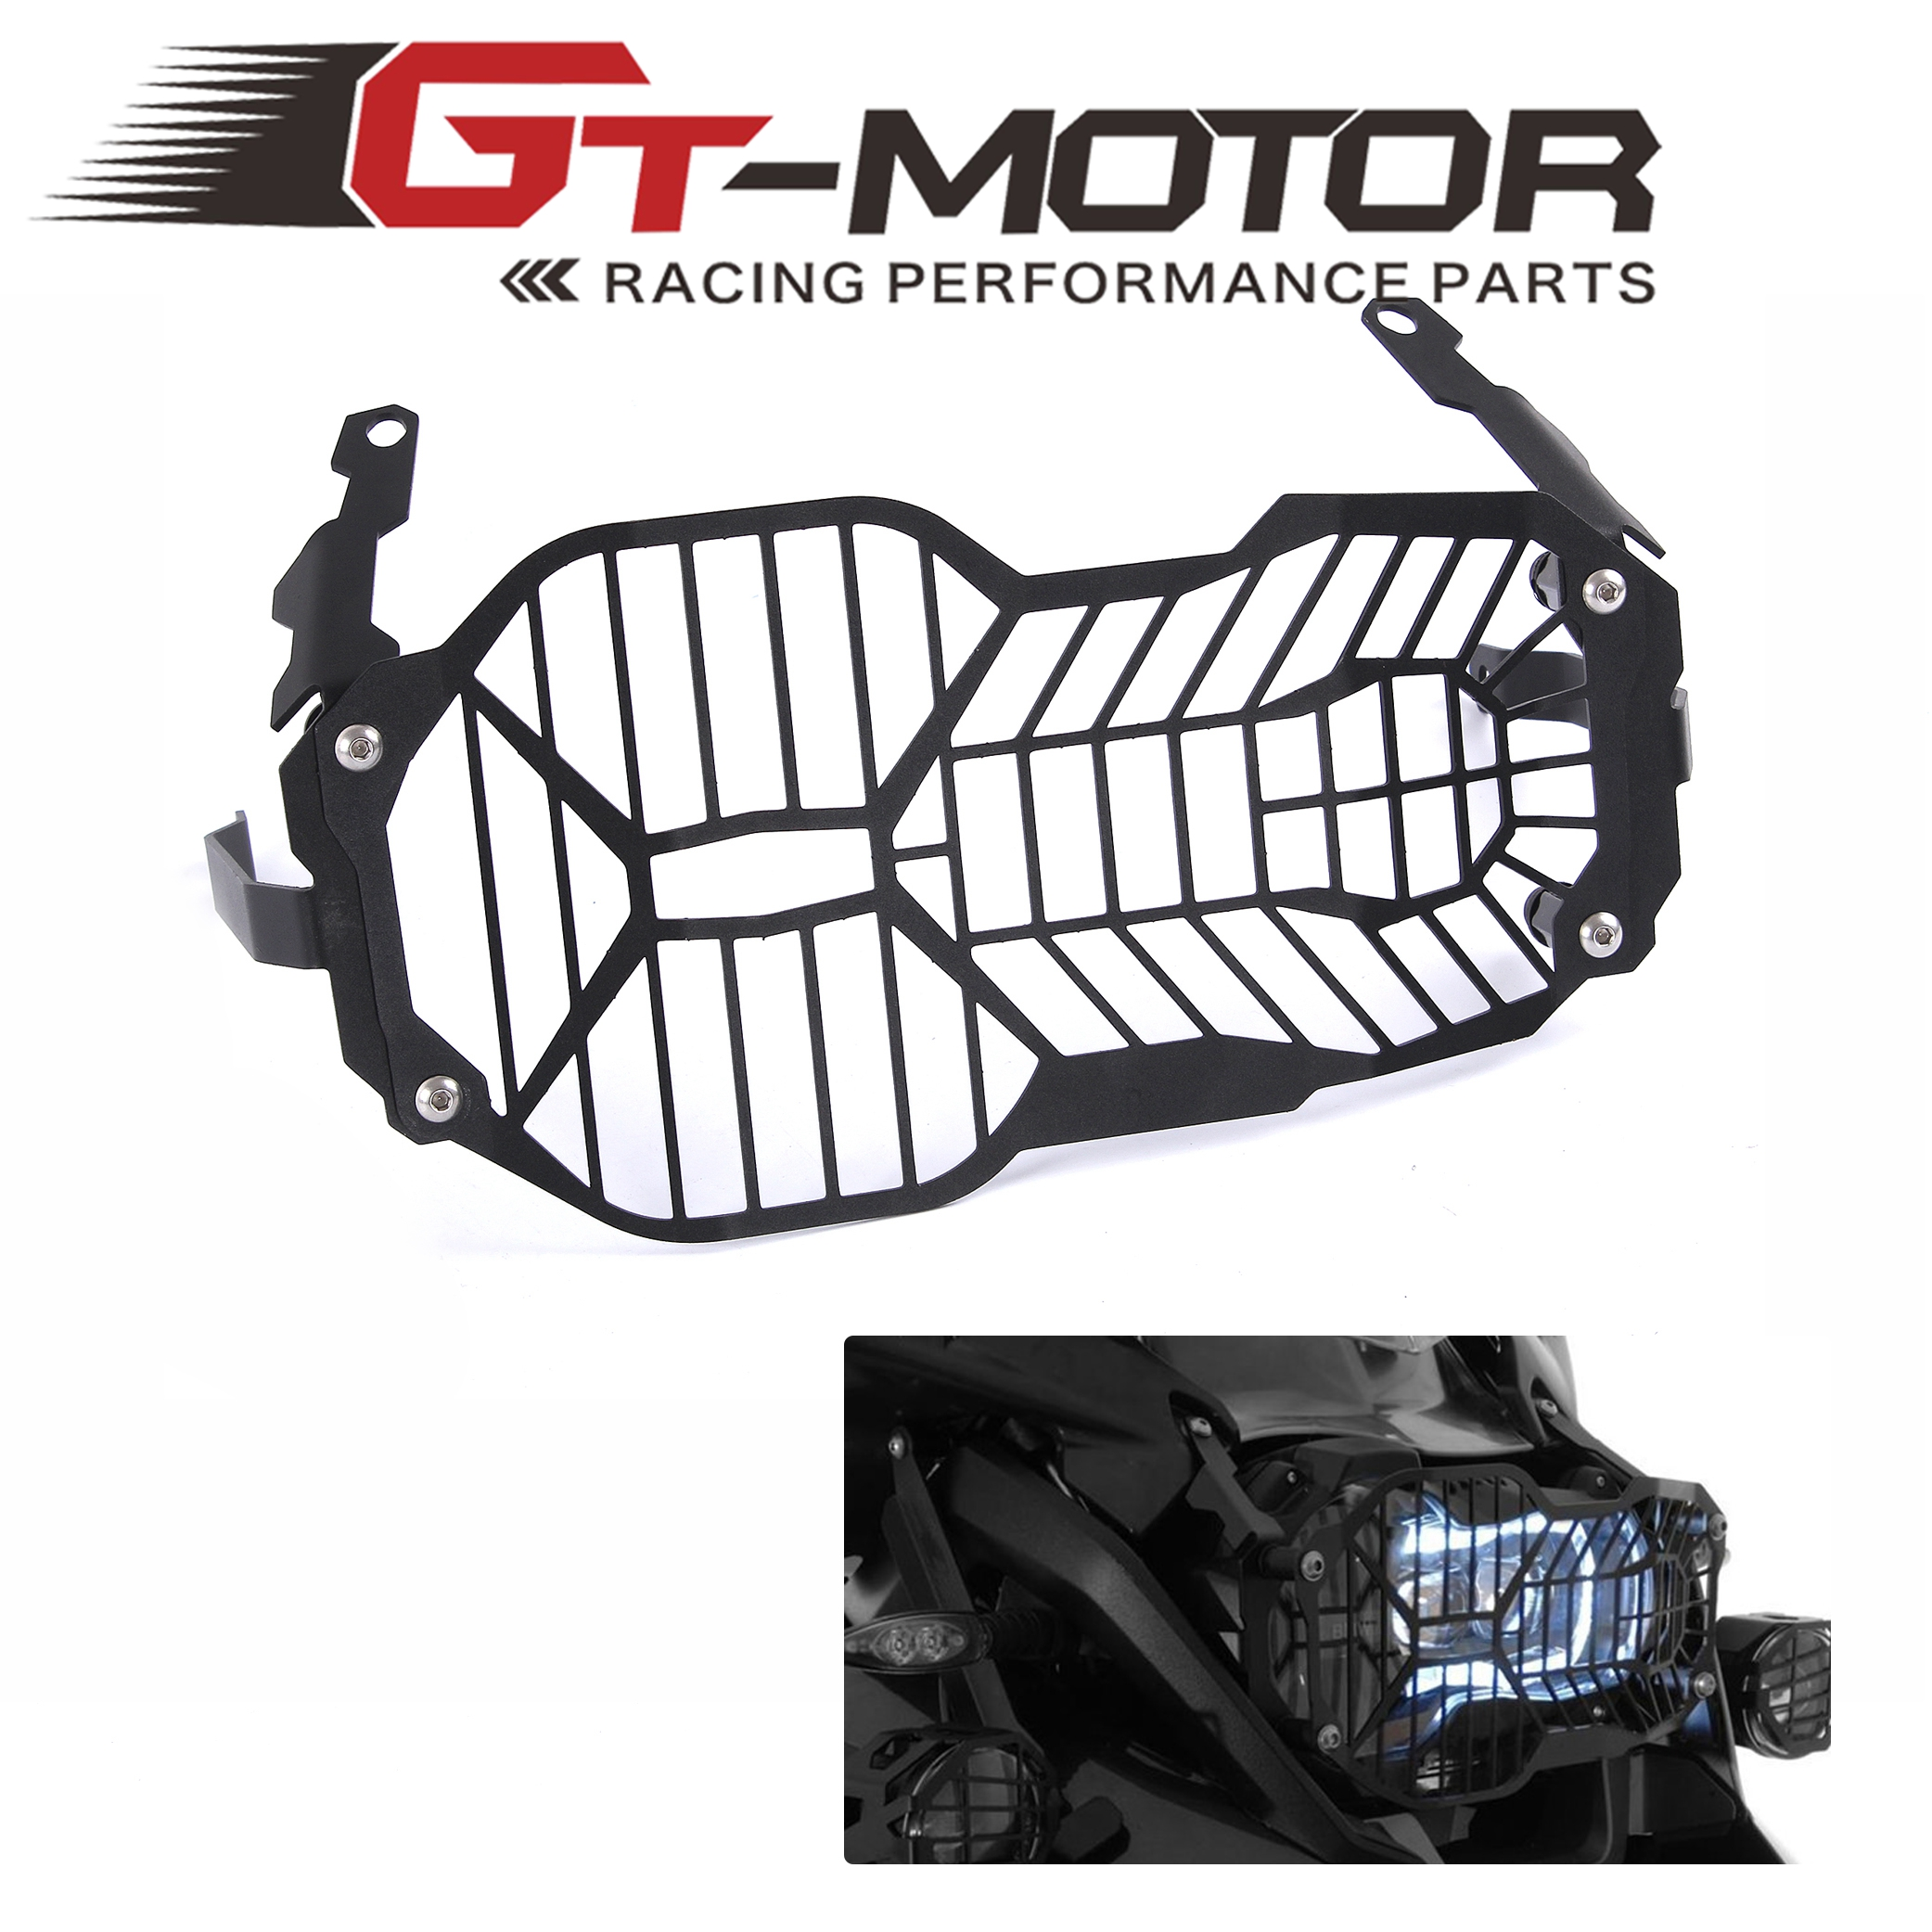 Motorcycle Front Headlight Grille Guard Cover Protector For GSA BMW R1200GS R1250GS R 1200 R1200 GS /LC /Adventure 2013 2018